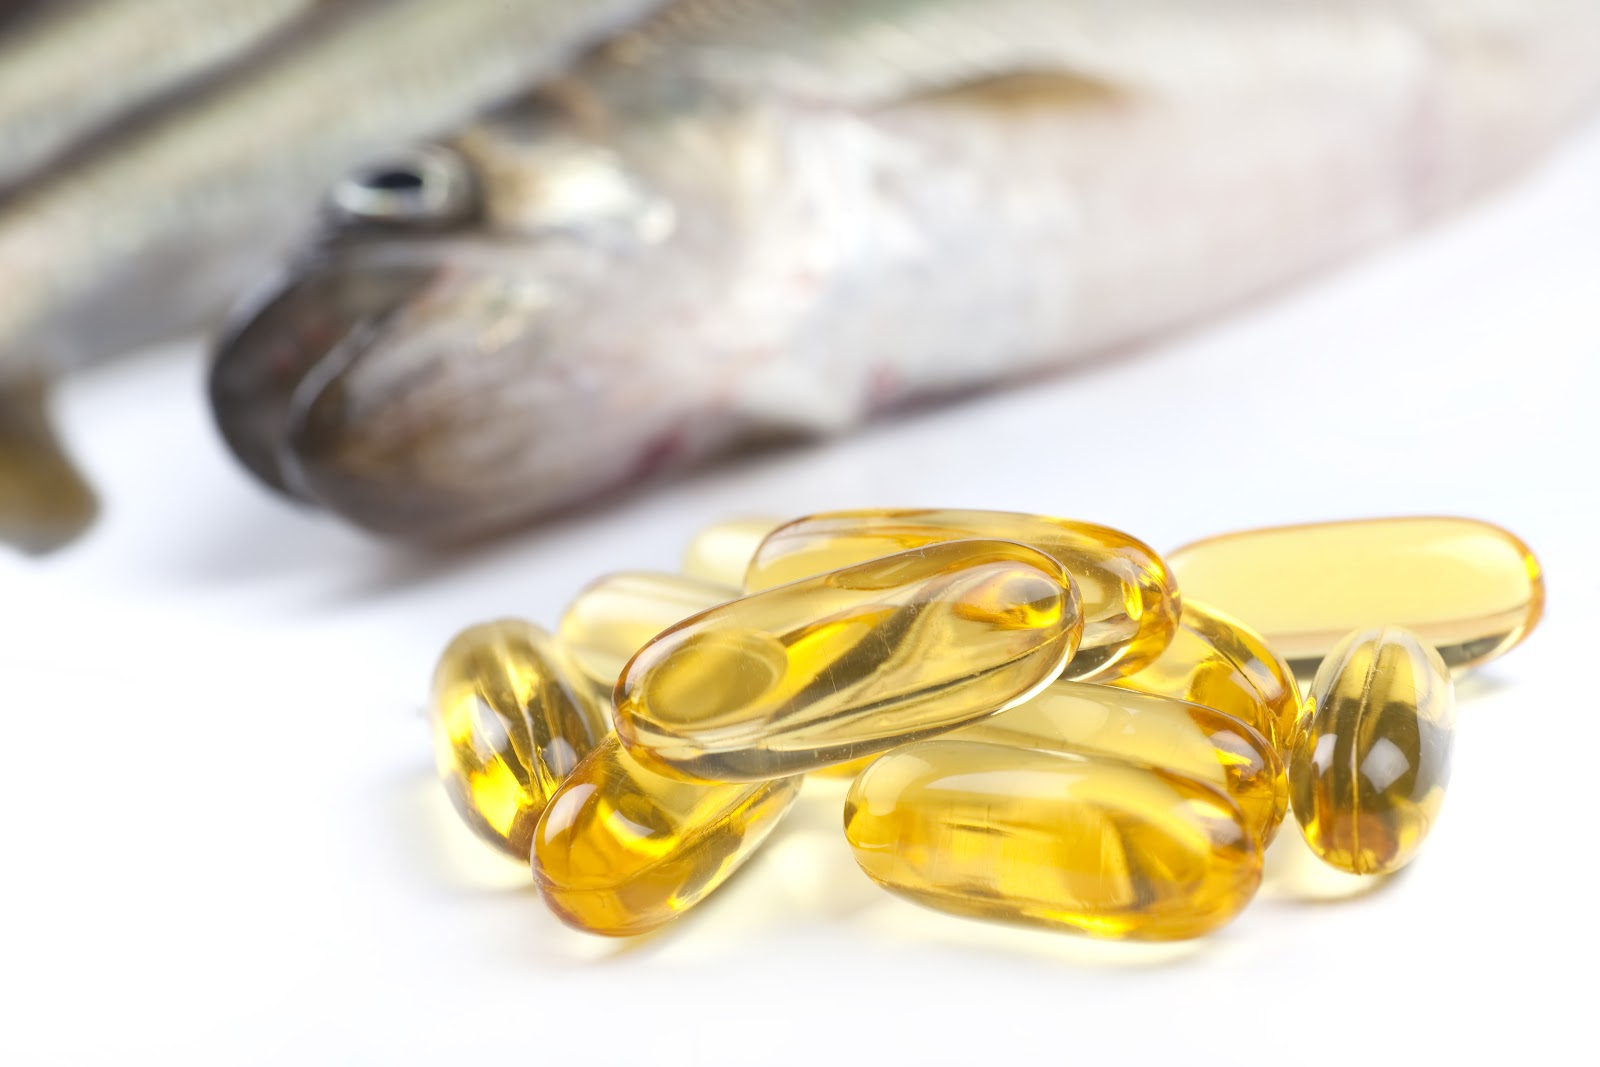 Fish Oil: Just The Facts